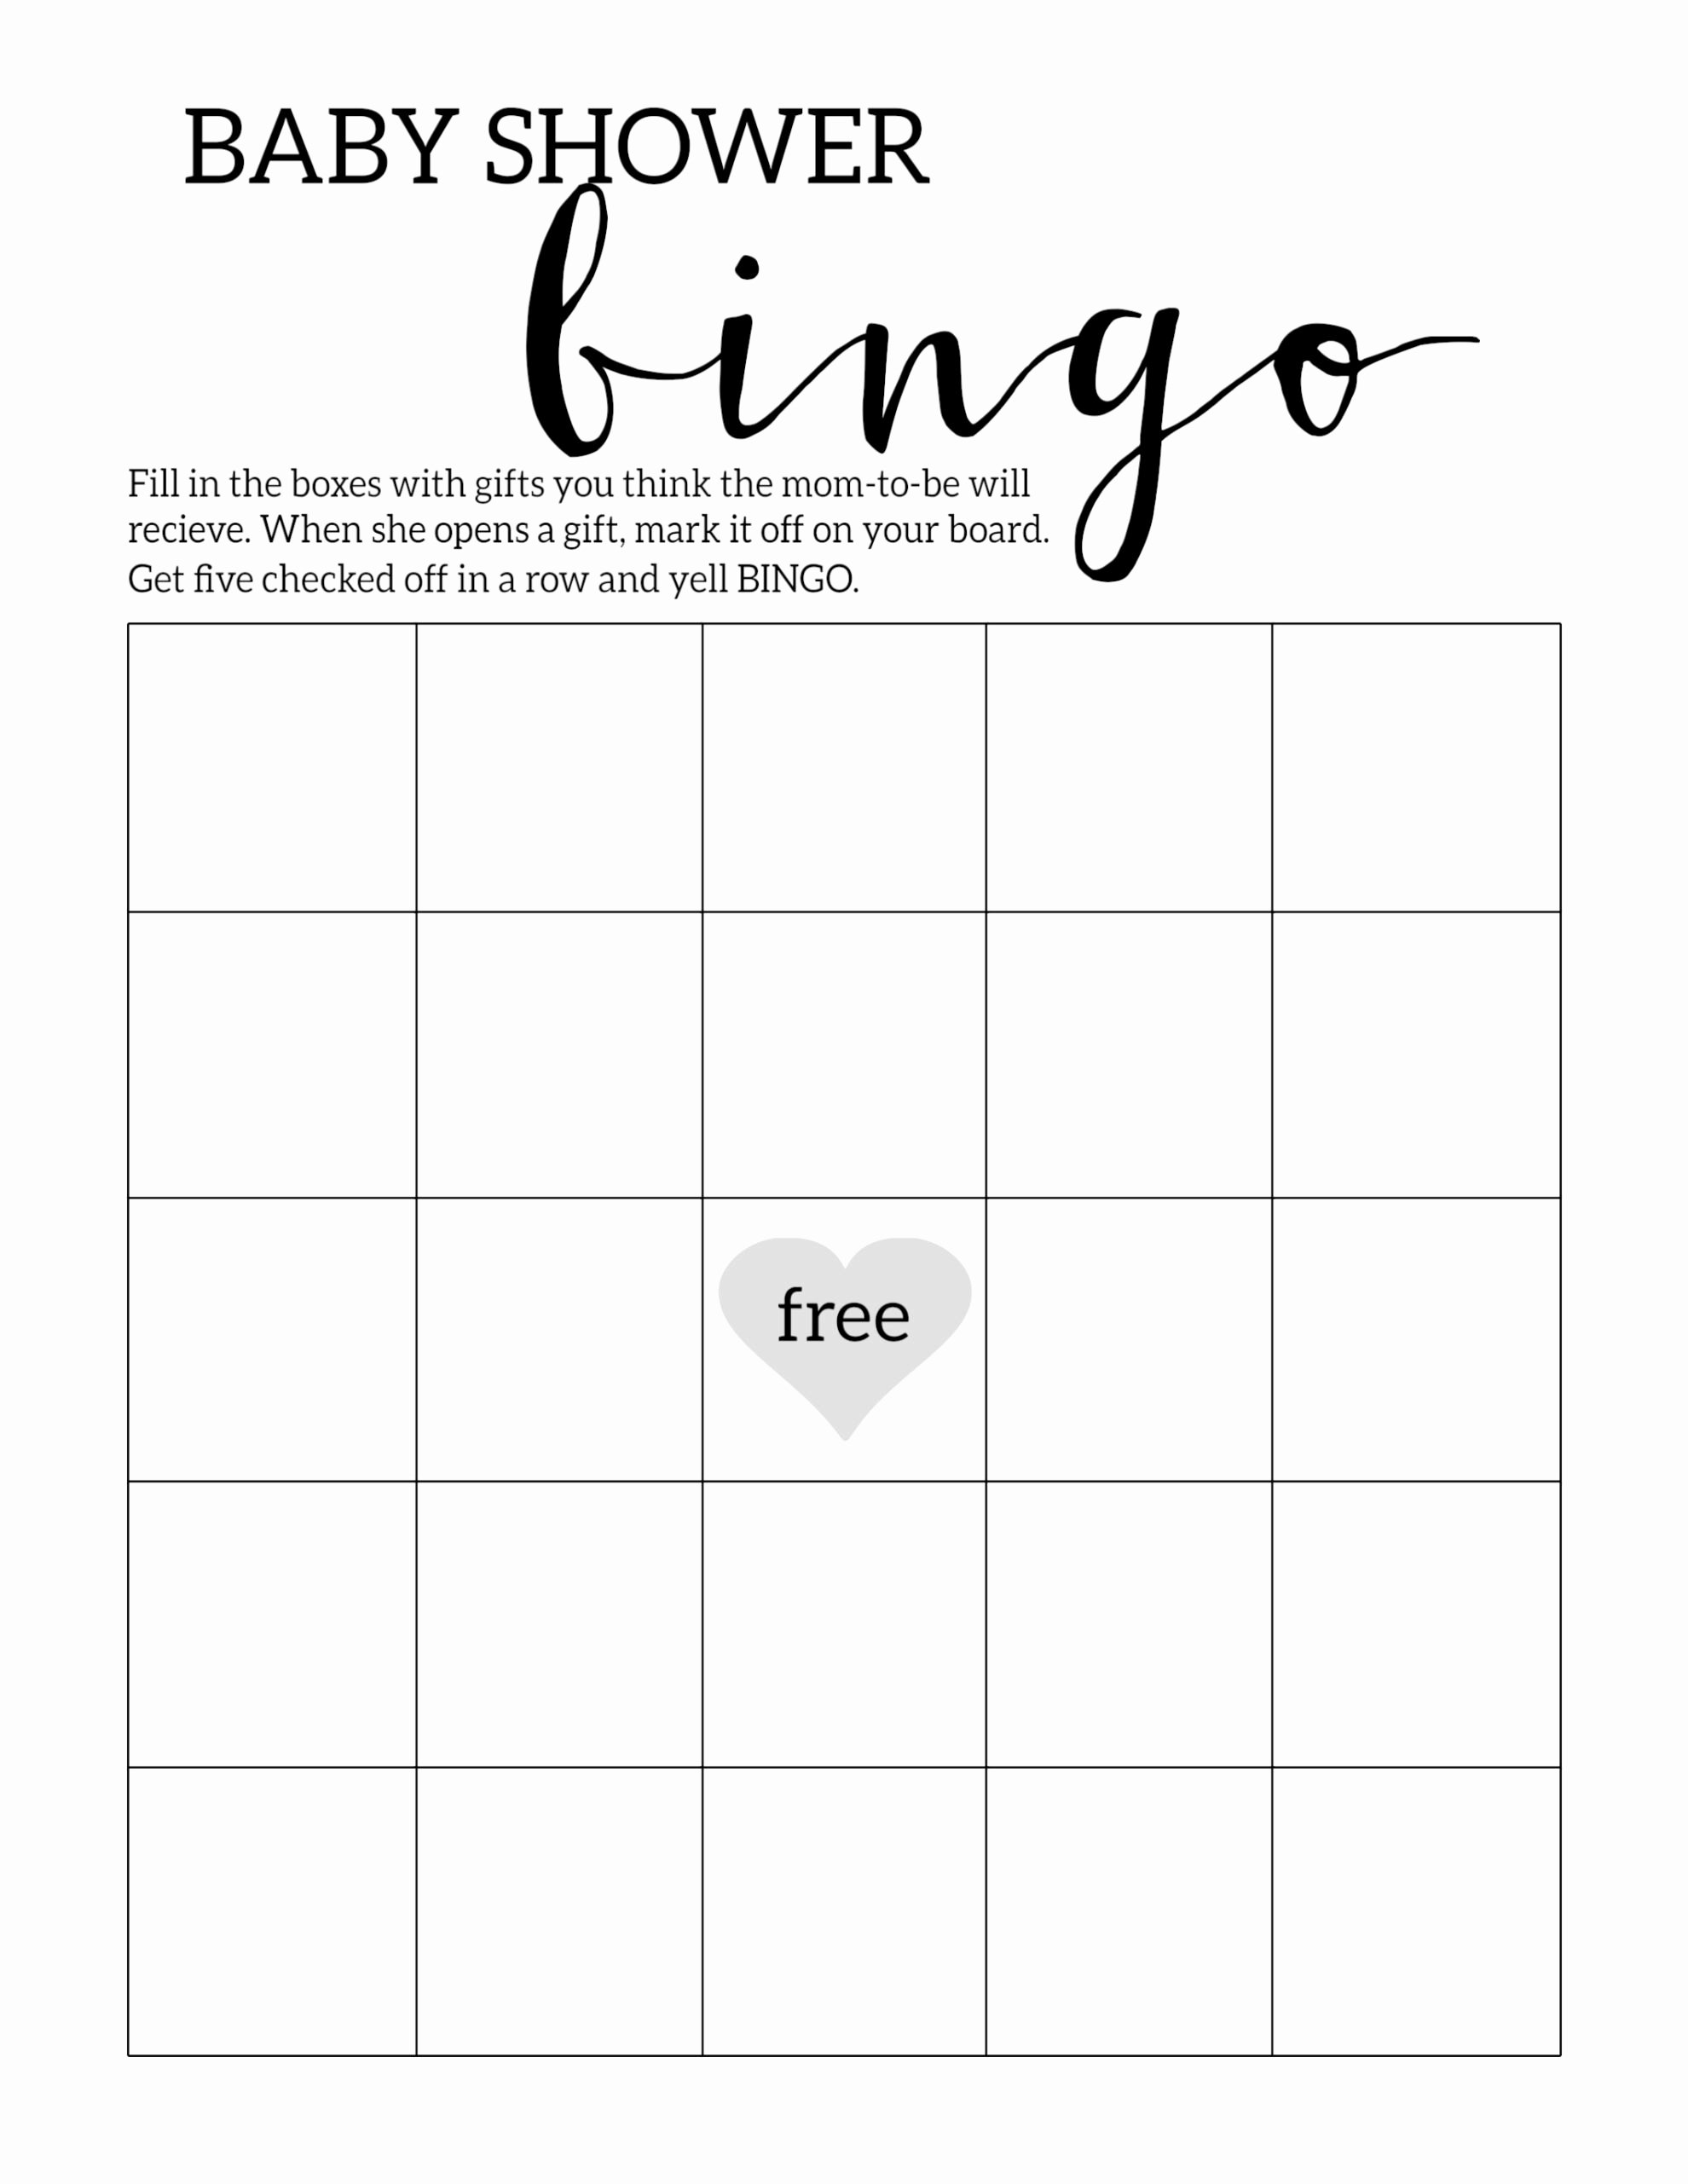 Free Blank Bingo Template Lovely Baby Shower Bingo Printable Cards Template Paper Trail